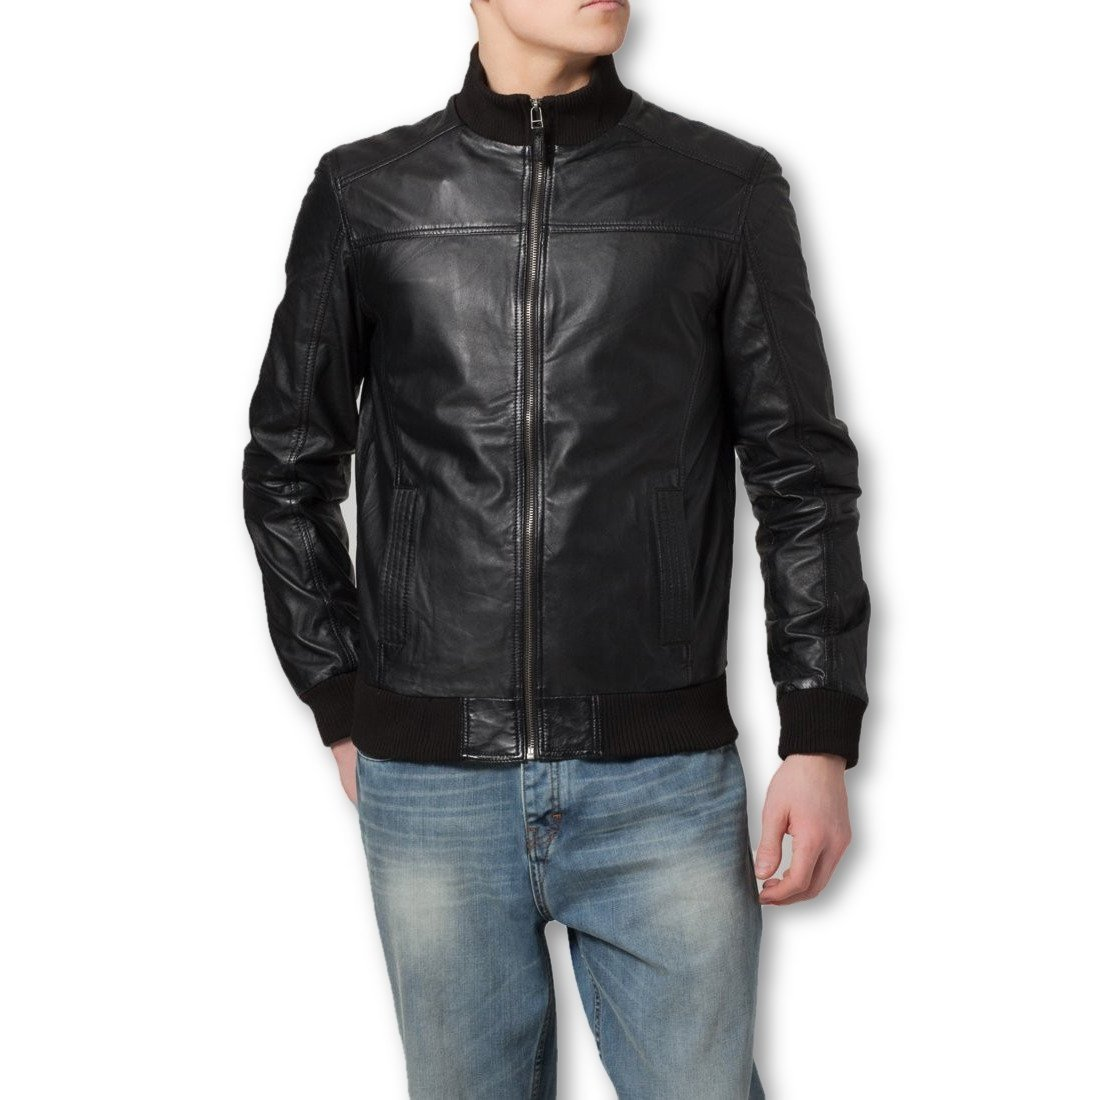 Ceduna Mens Leather Bomber Jacket - Discounted - fadcloset